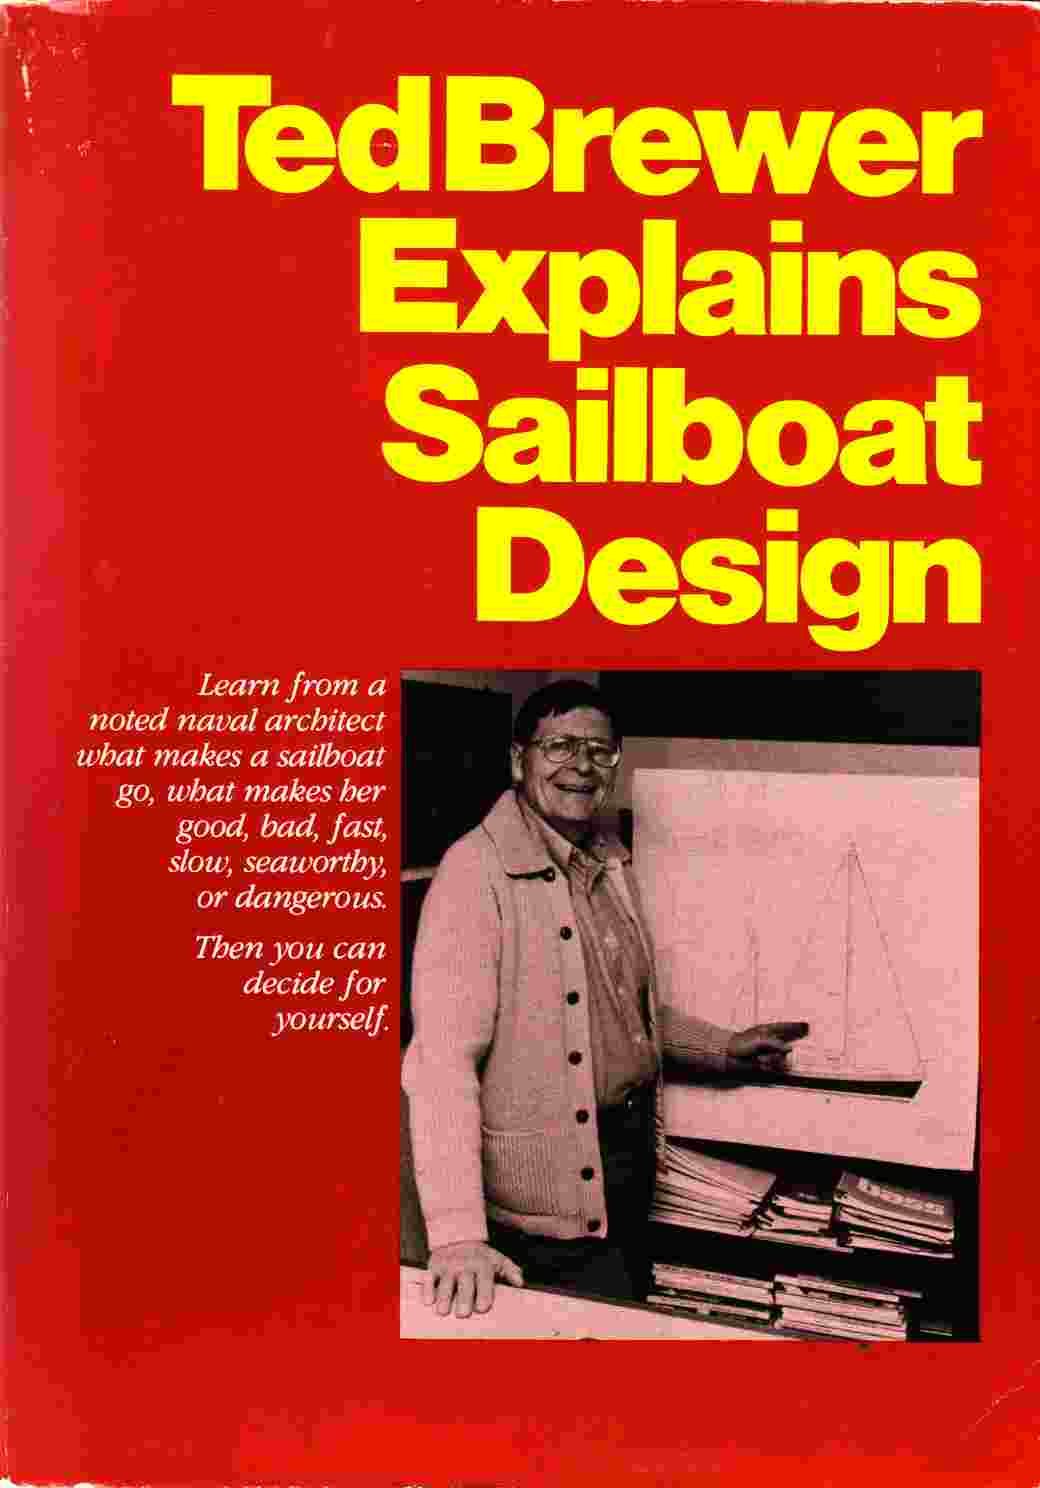 Image for Ted Brewer Explains Sailboat Design